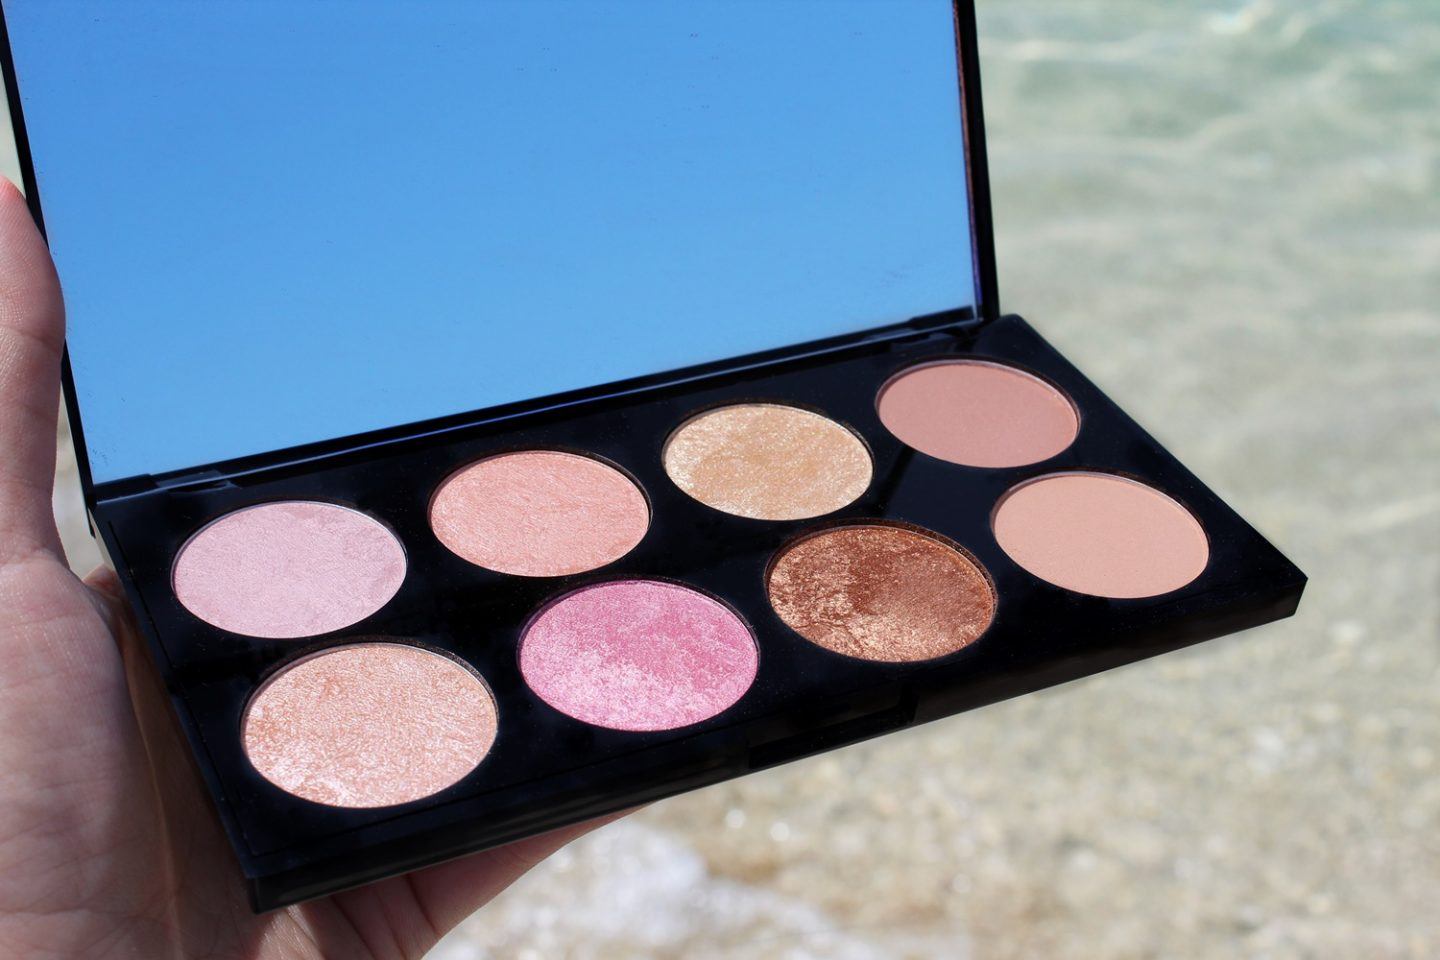 Makeup Revolution Golden Sugar 2 Rose Gold Palette - Miel and Mint blog review